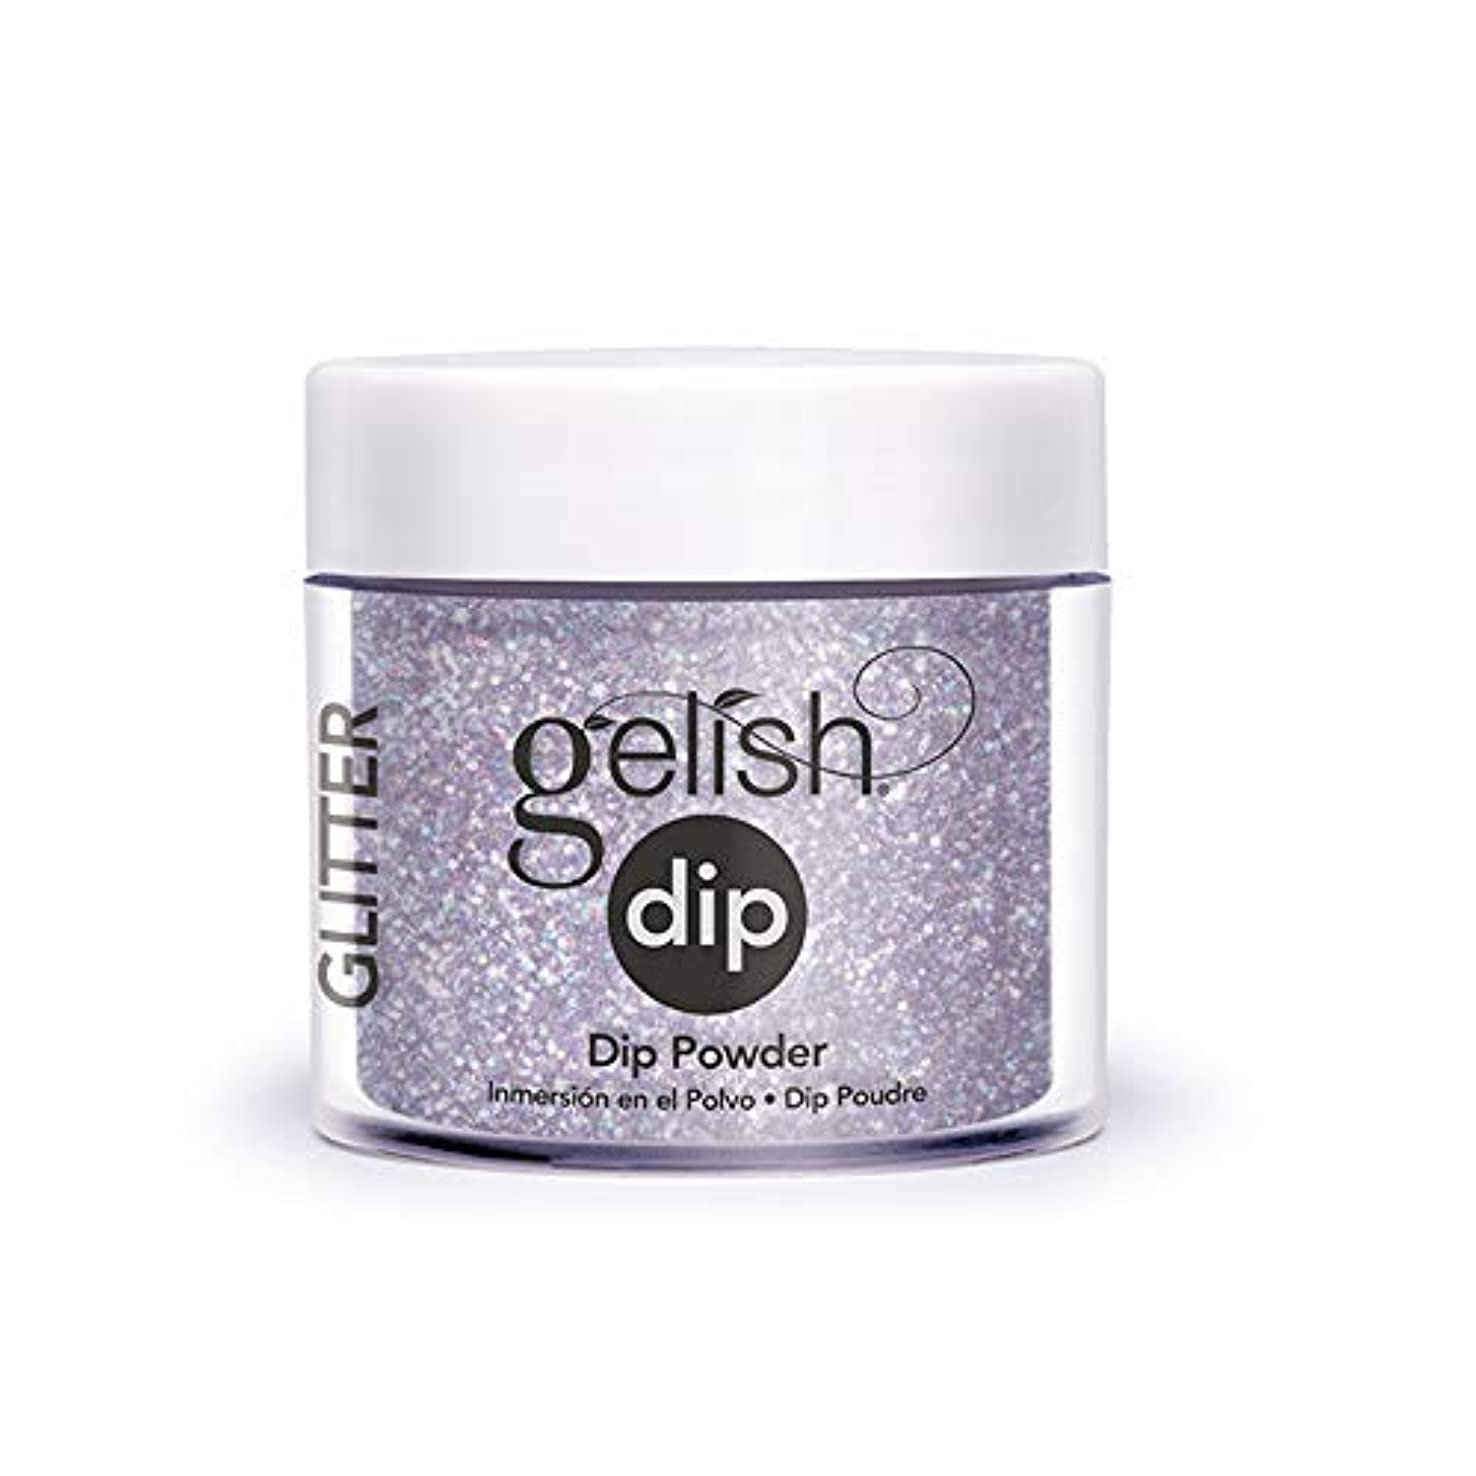 方程式力学あらゆる種類のHarmony Gelish - Acrylic Dip Powder - Let Them Eat Cake - 23g / 0.8oz